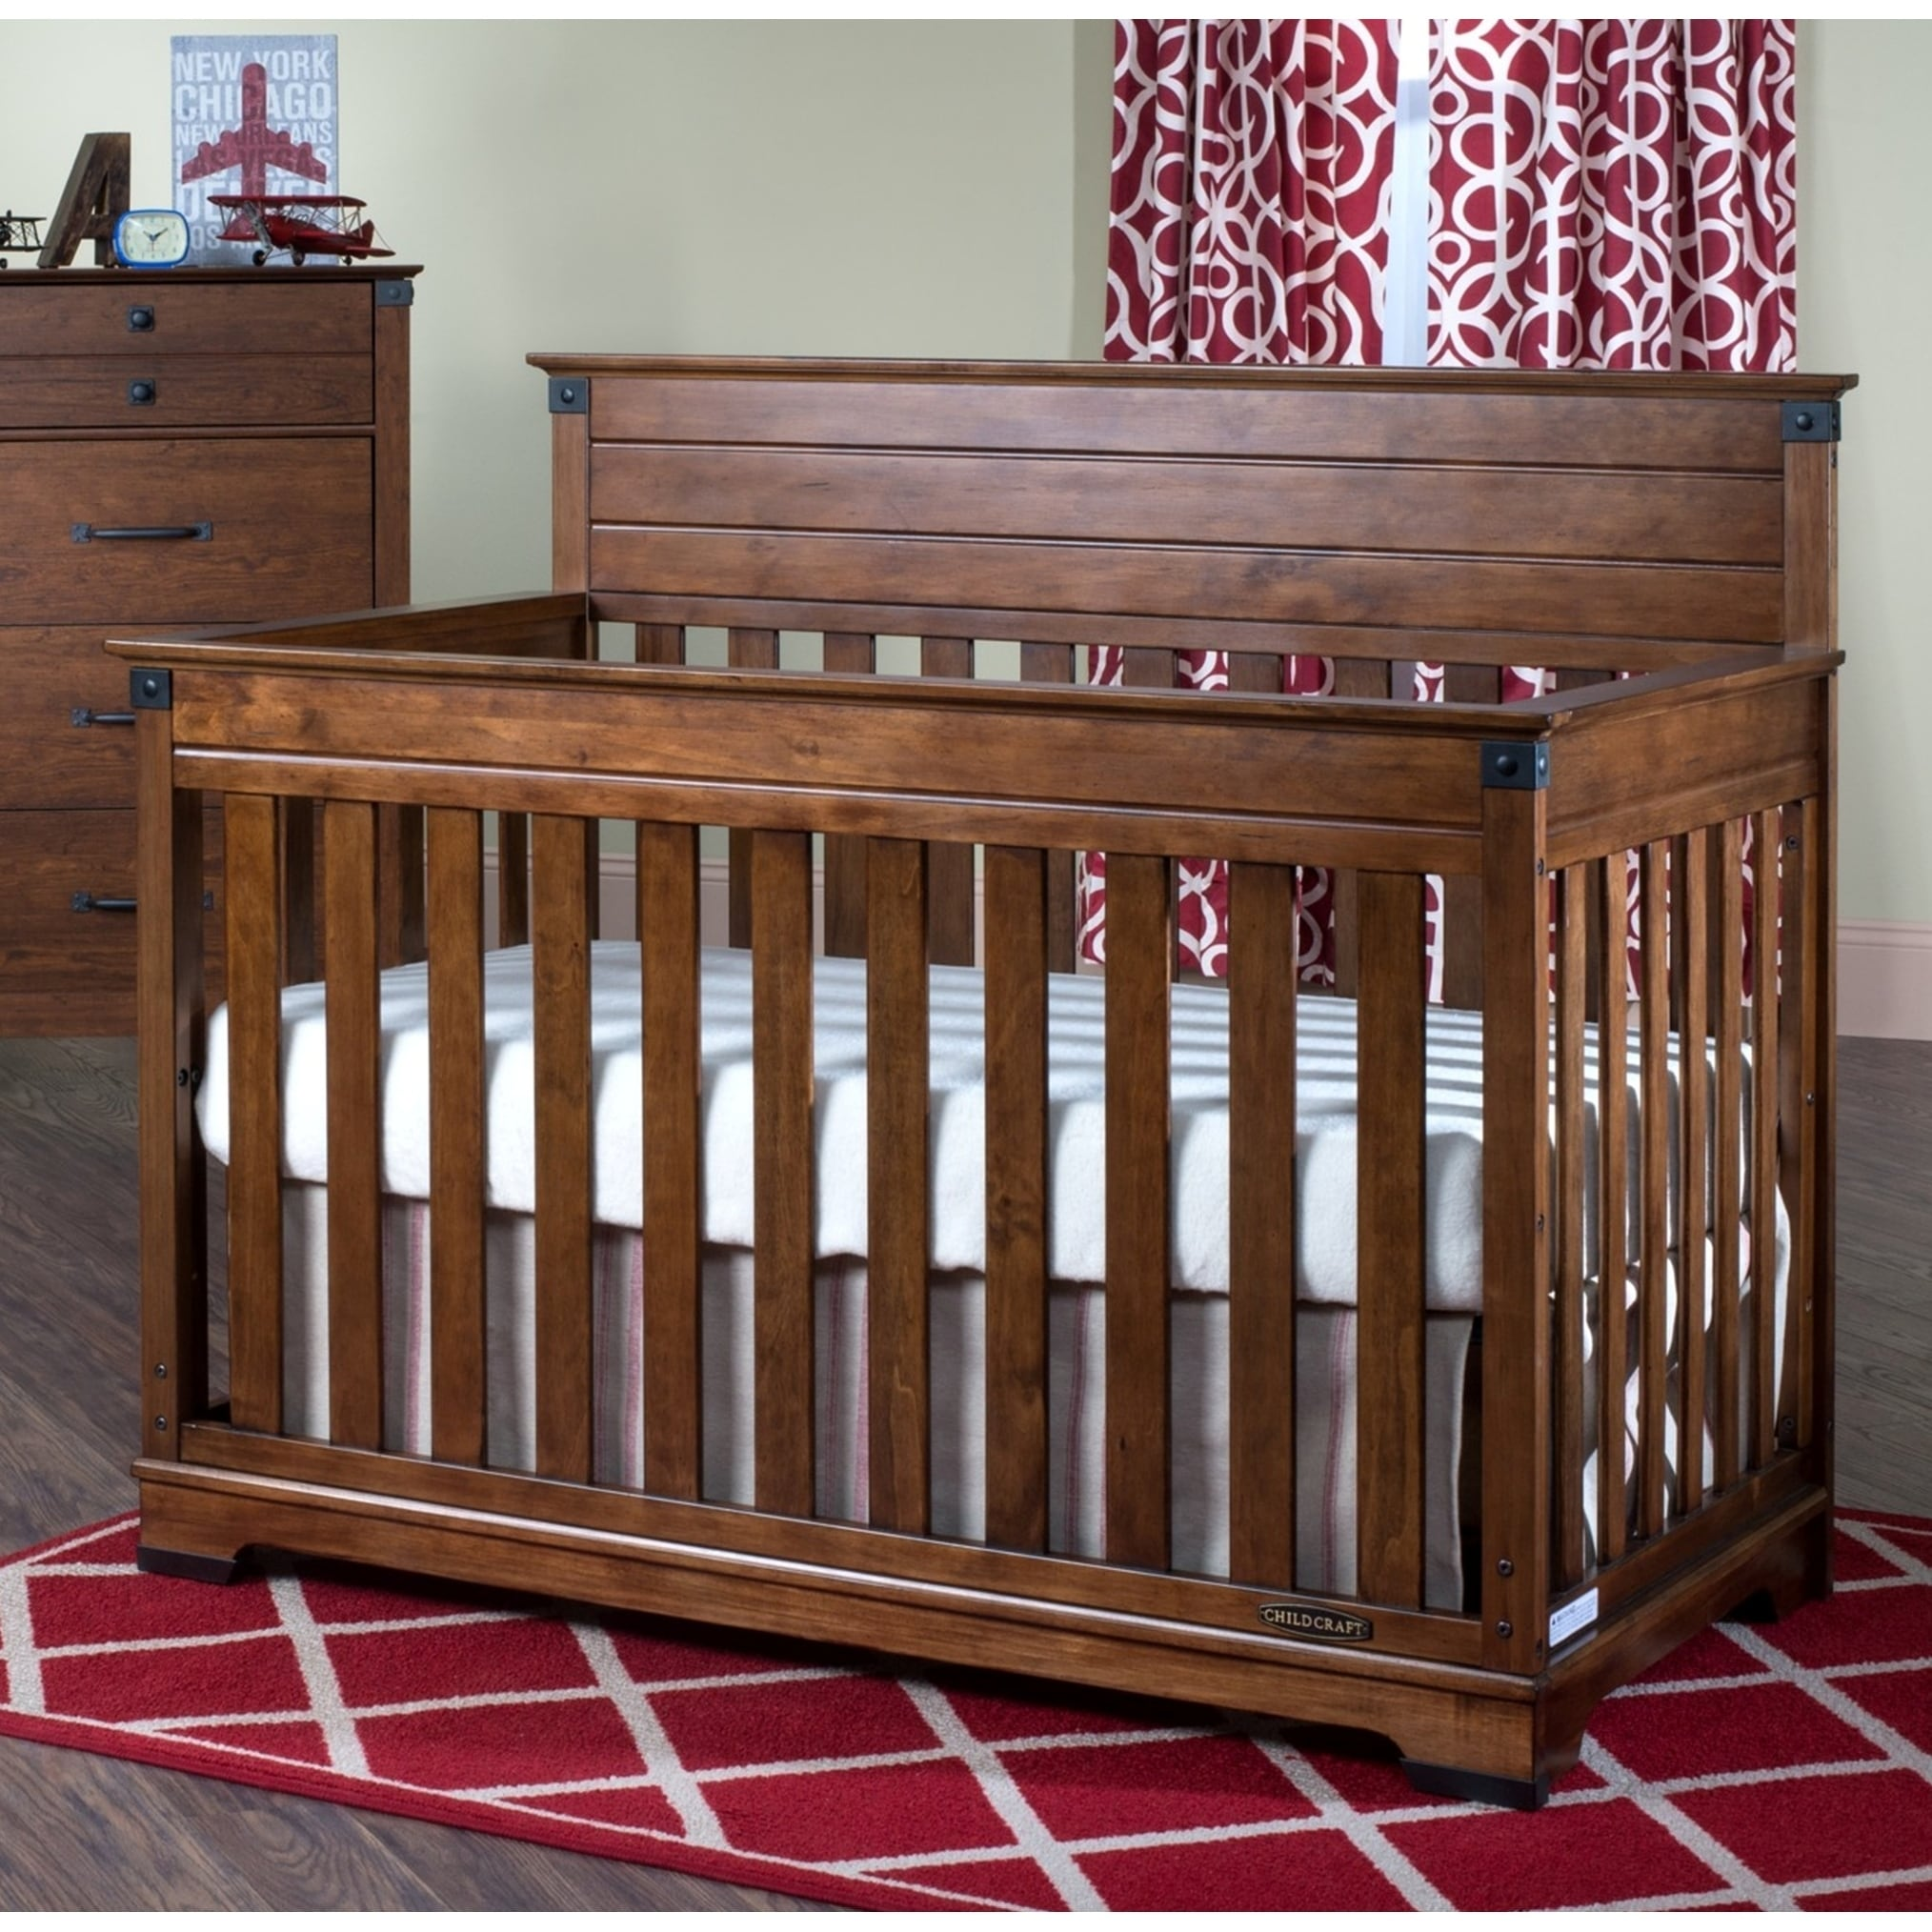 Buy 4-in-1 Baby Cribs Online at Overstock.com | Our Best Kids ...